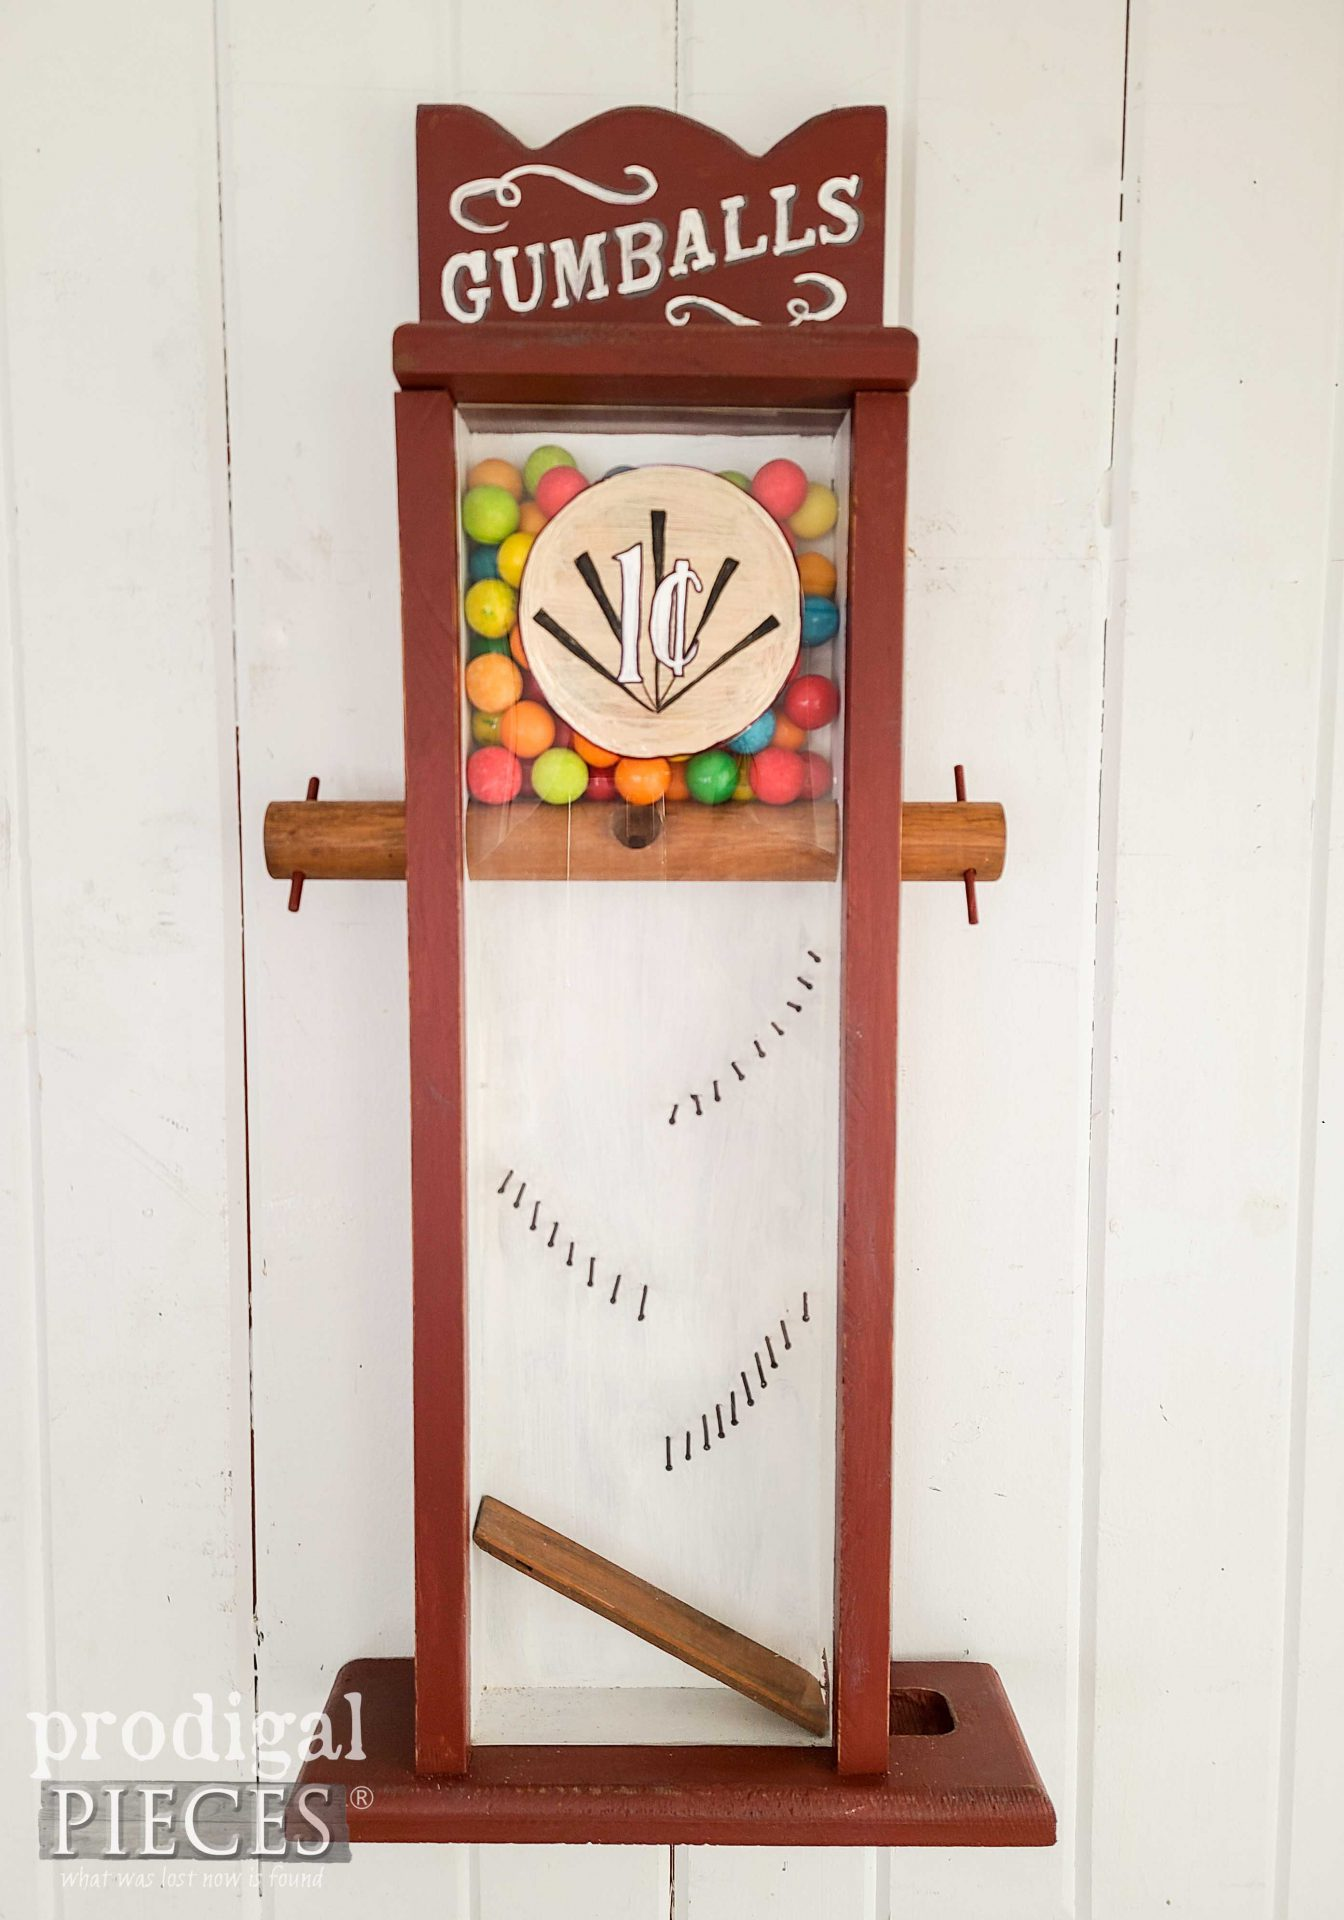 Vintage Handmade Gumball Machine Makeover by Larissa of Prodigal Pieces | prodigalpieces.com #prodigalpieces #handmade #vintage #home #homedecor